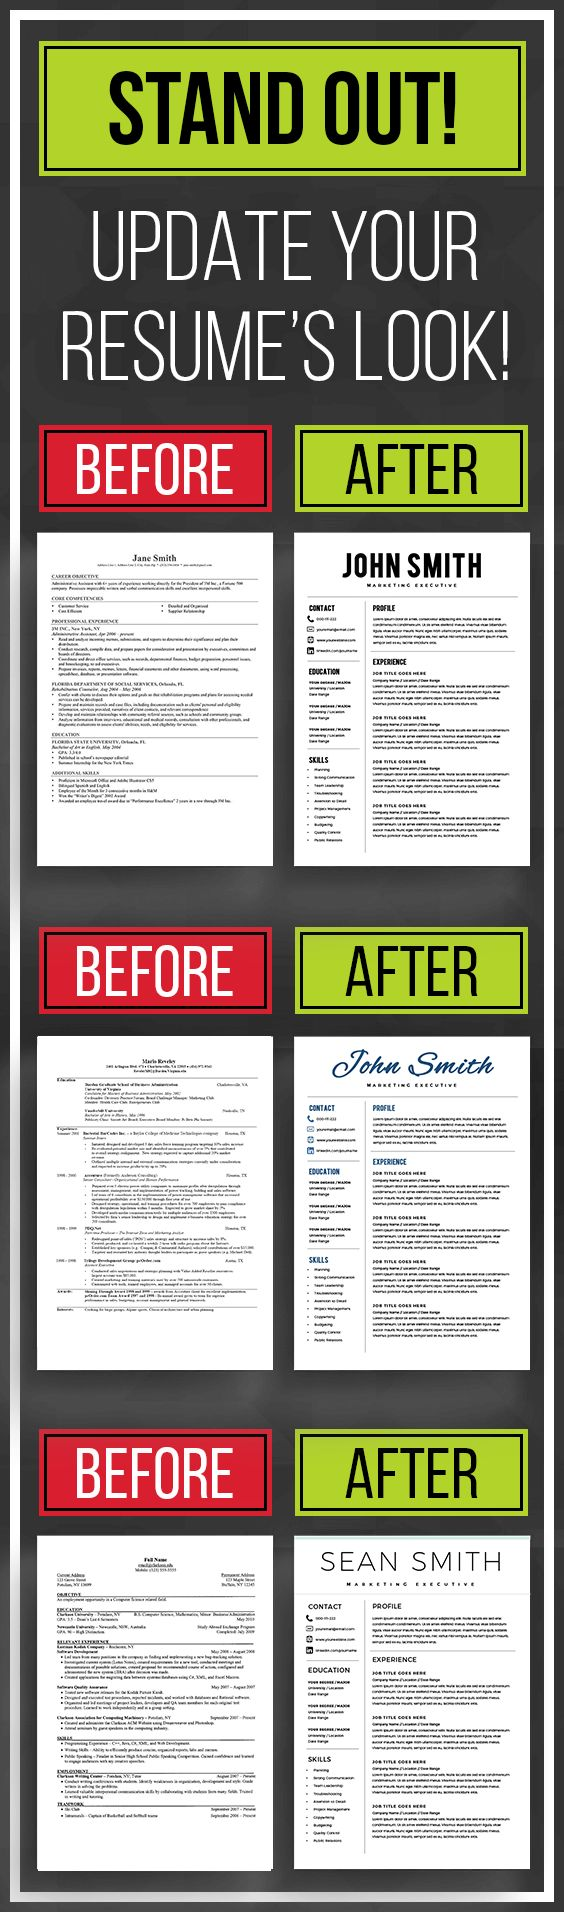 STAND OUT with resume template, resume templates word, cv template, resume templates for word,  template for resume,  simple resume template,  resume templates, modern resume template,  resumes templates, best resume templates, templates  cv, creative resume templates, resume templates